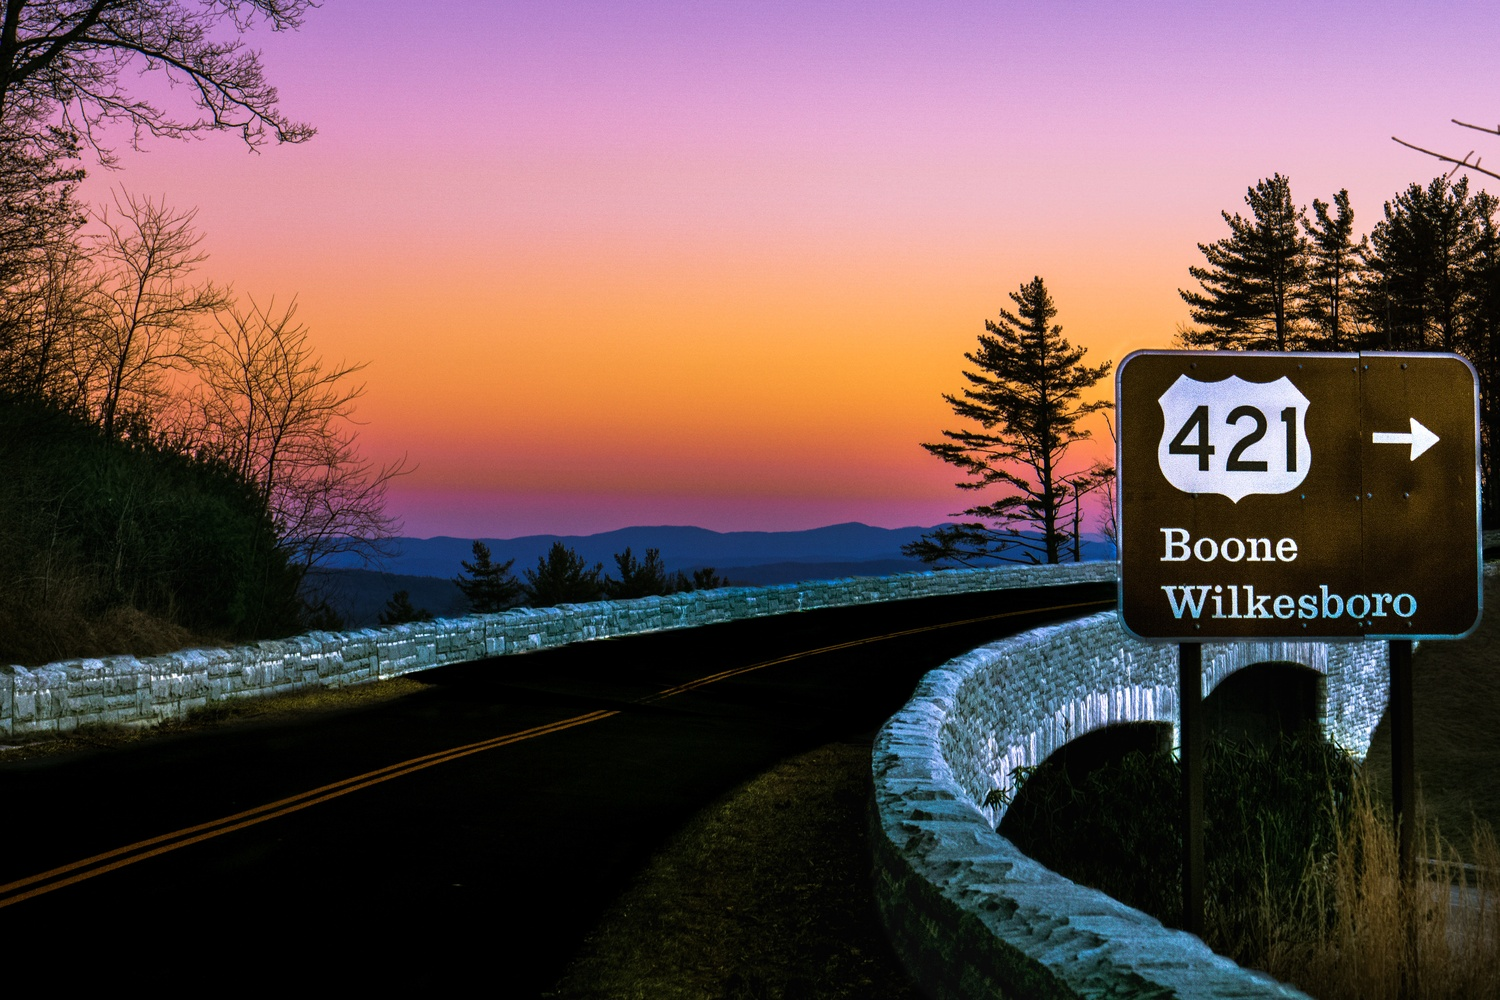 Sunset on the Blue Ridge Parkway by Tanner Goodman